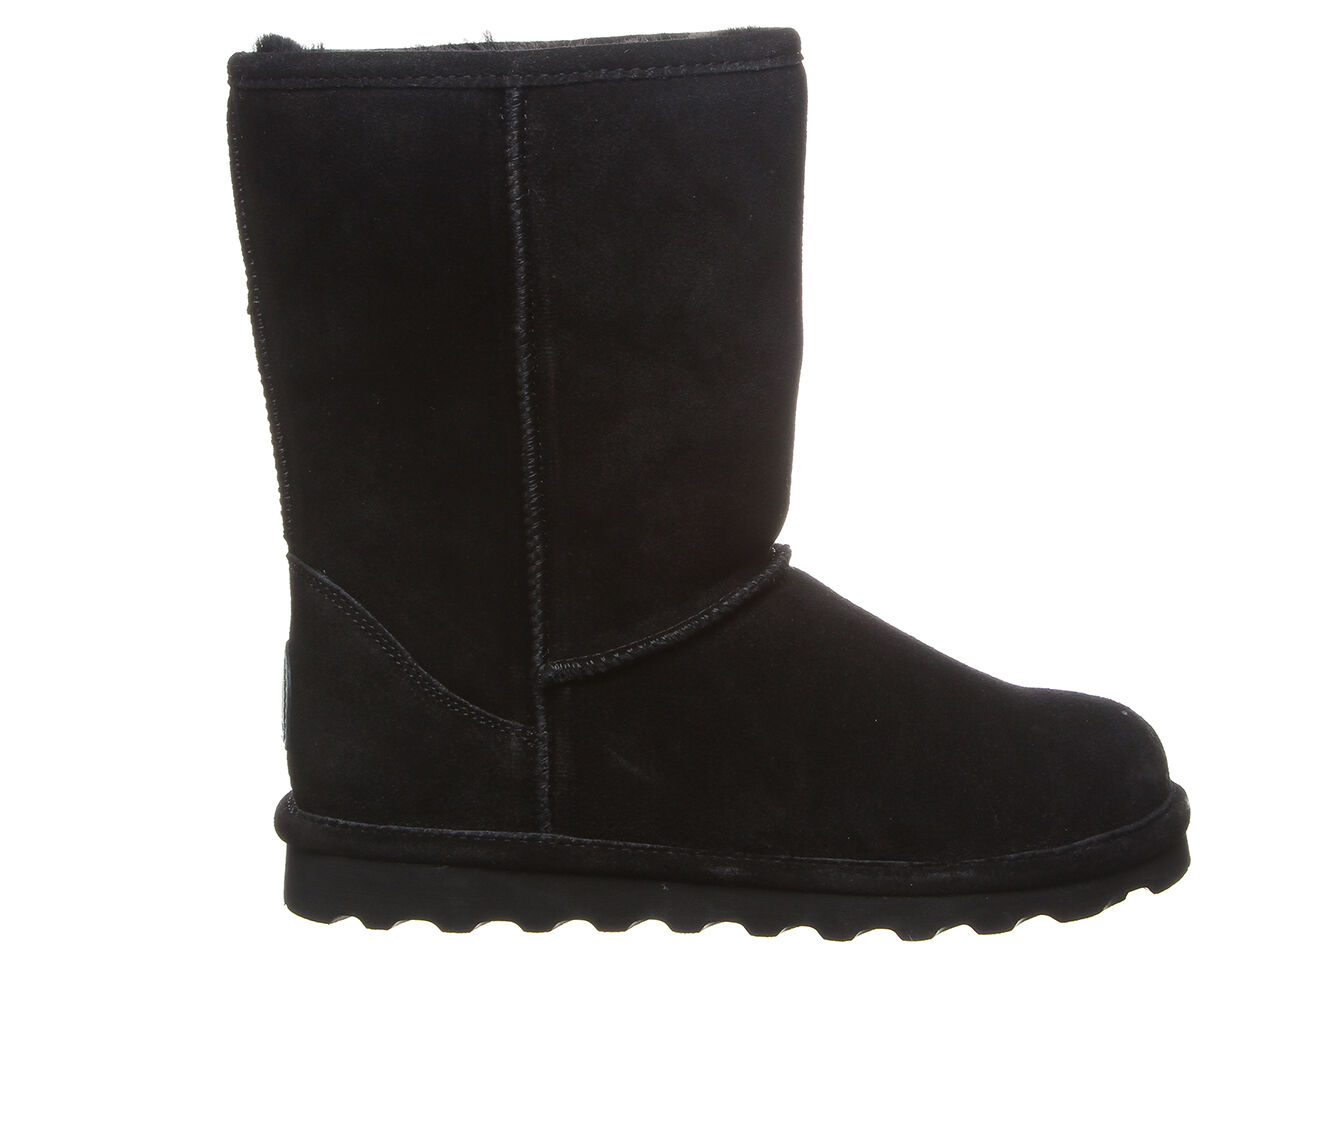 Women's Bearpaw Elle Short Wide Boots Black